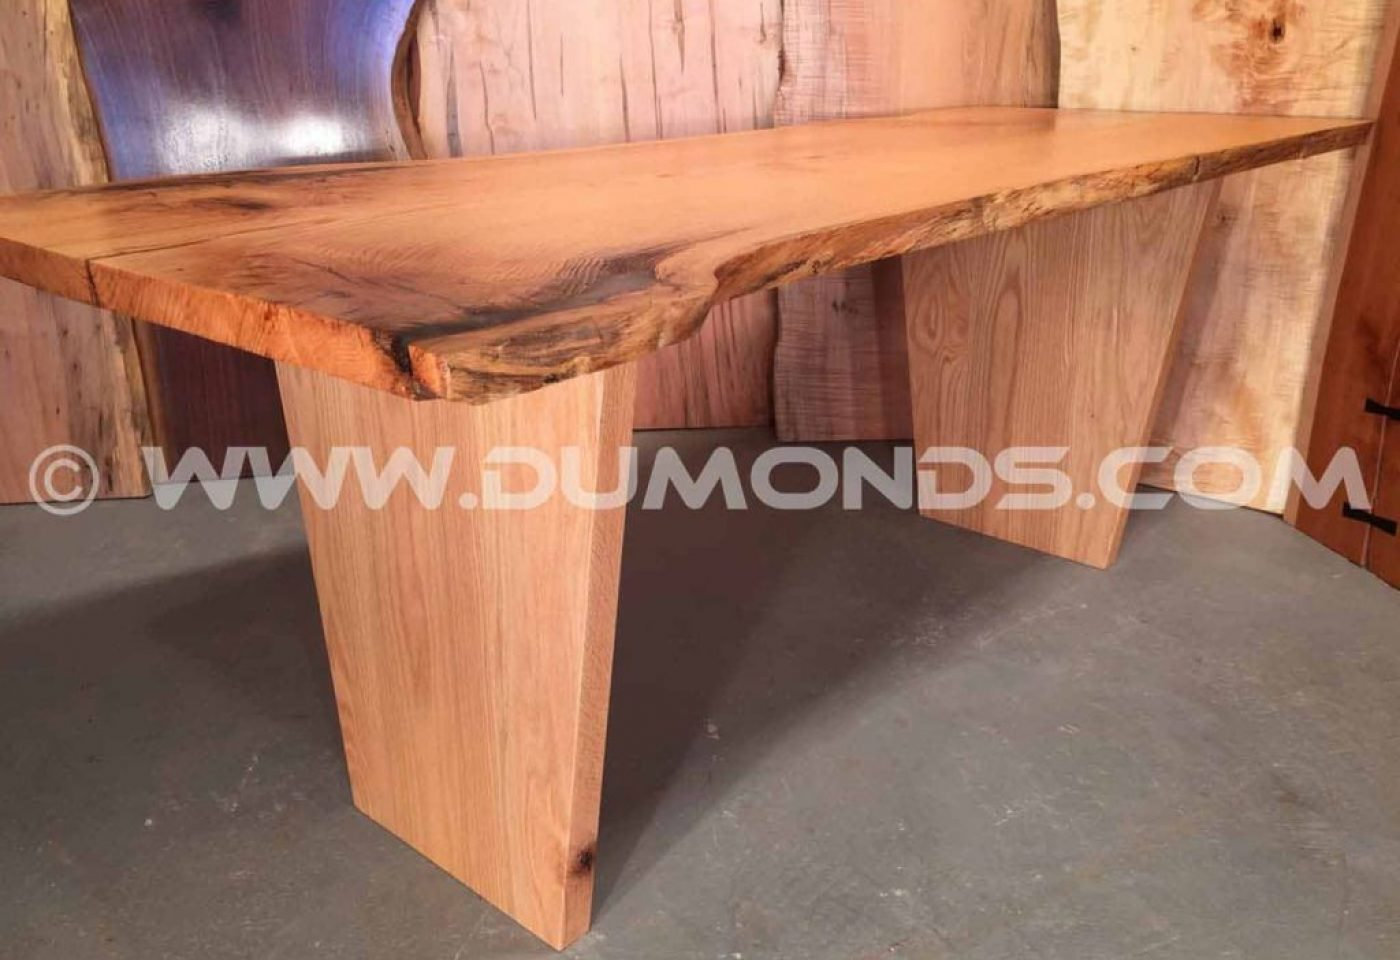 VERTICAL TAPERED OAK TABLE LEGS